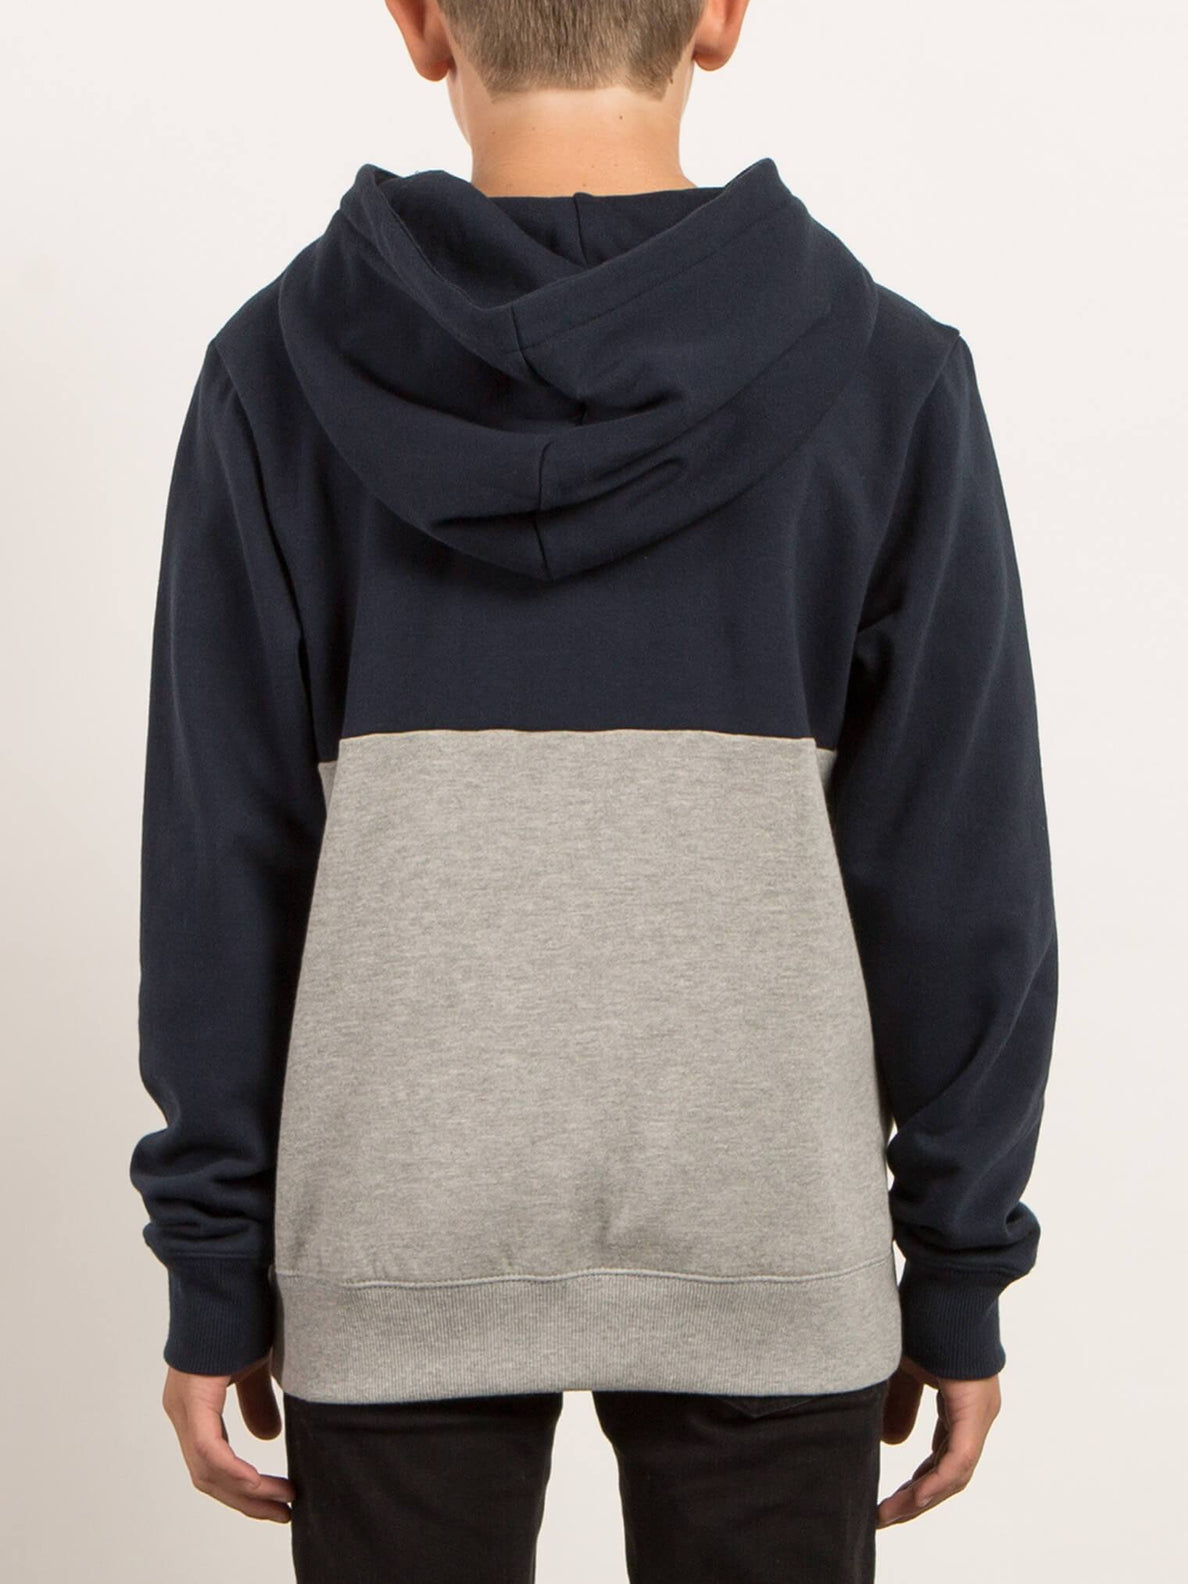 Single Stone Division Hooded Pullover - Navy (Niňo)